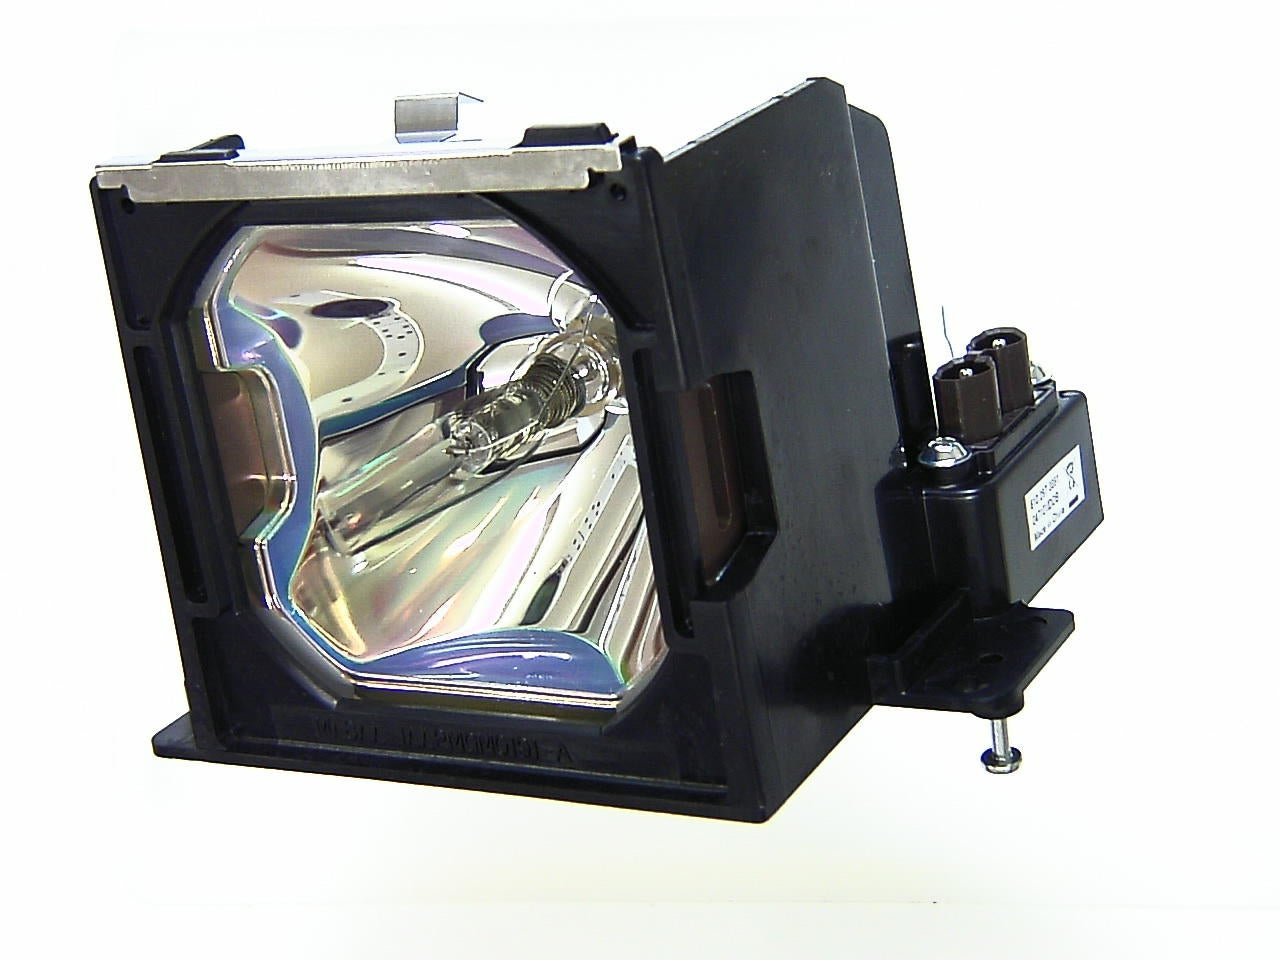 Christie 03-000667-01 Projector Lamp